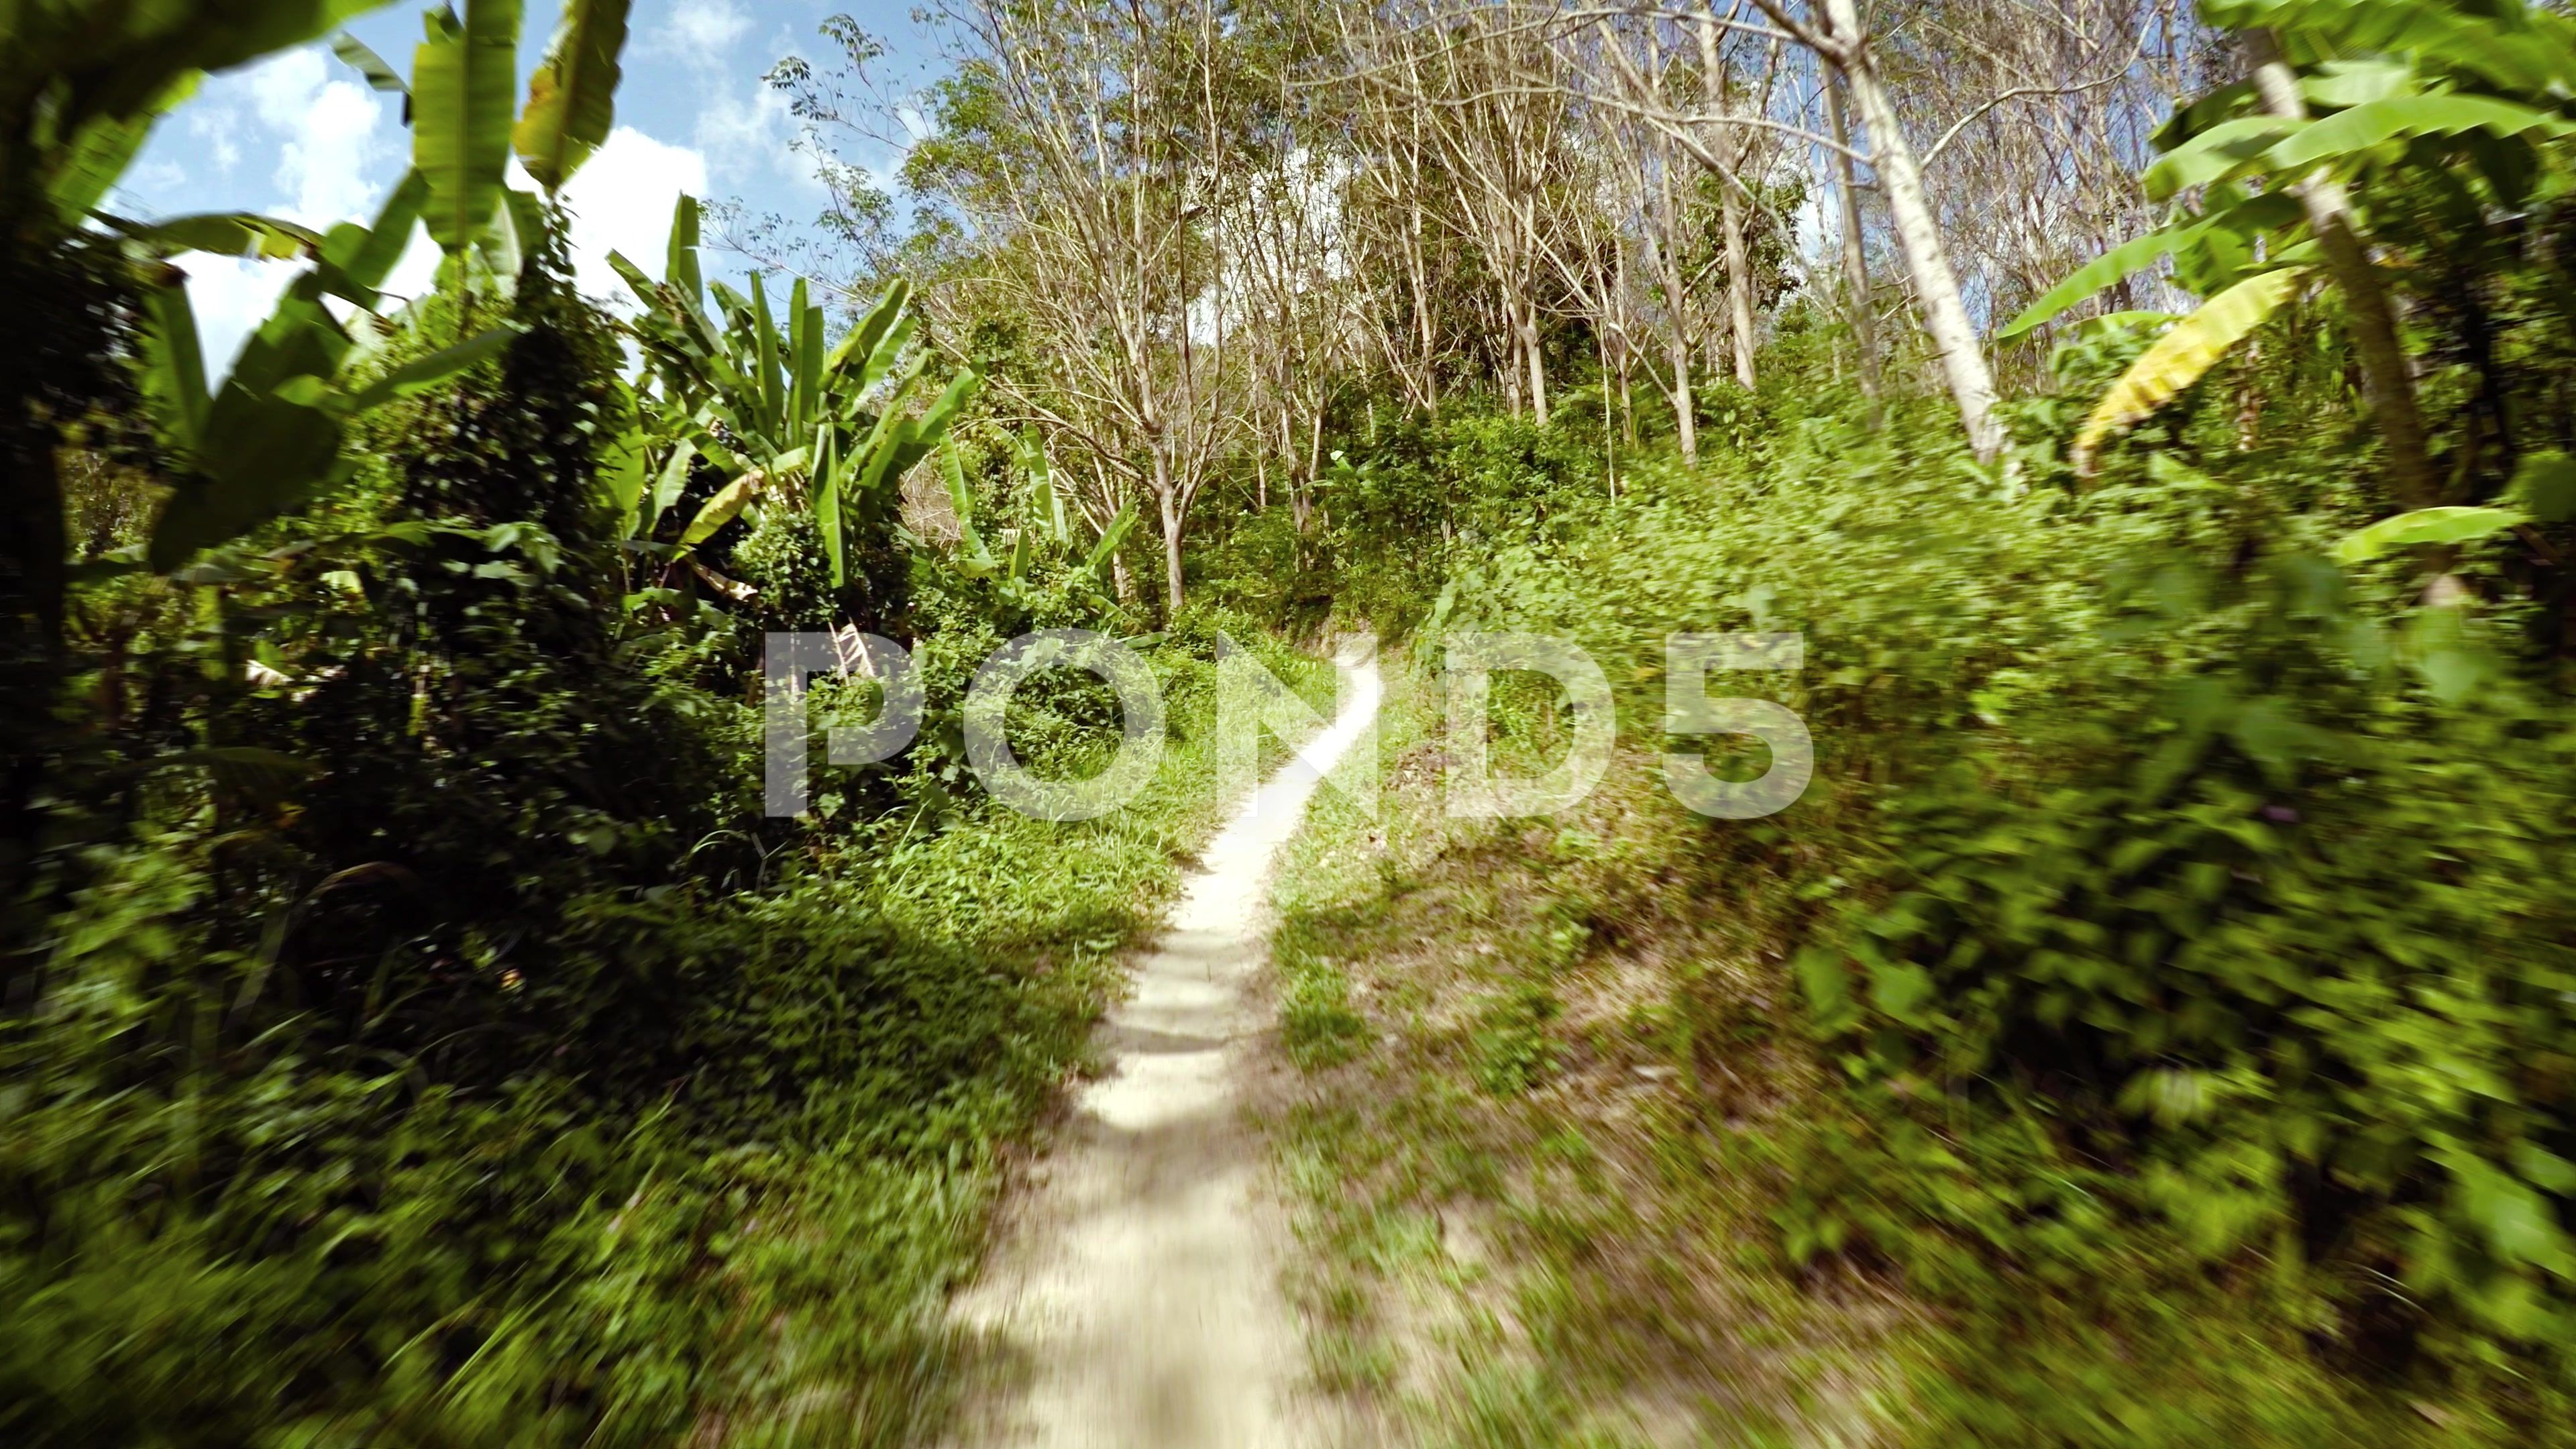 Passing Along Tropical Nature Trail In Slow Motion Video Ultrahd Stock Footage Ad Trail Slow Nature Passing With Images Nature Trail Nature Trail